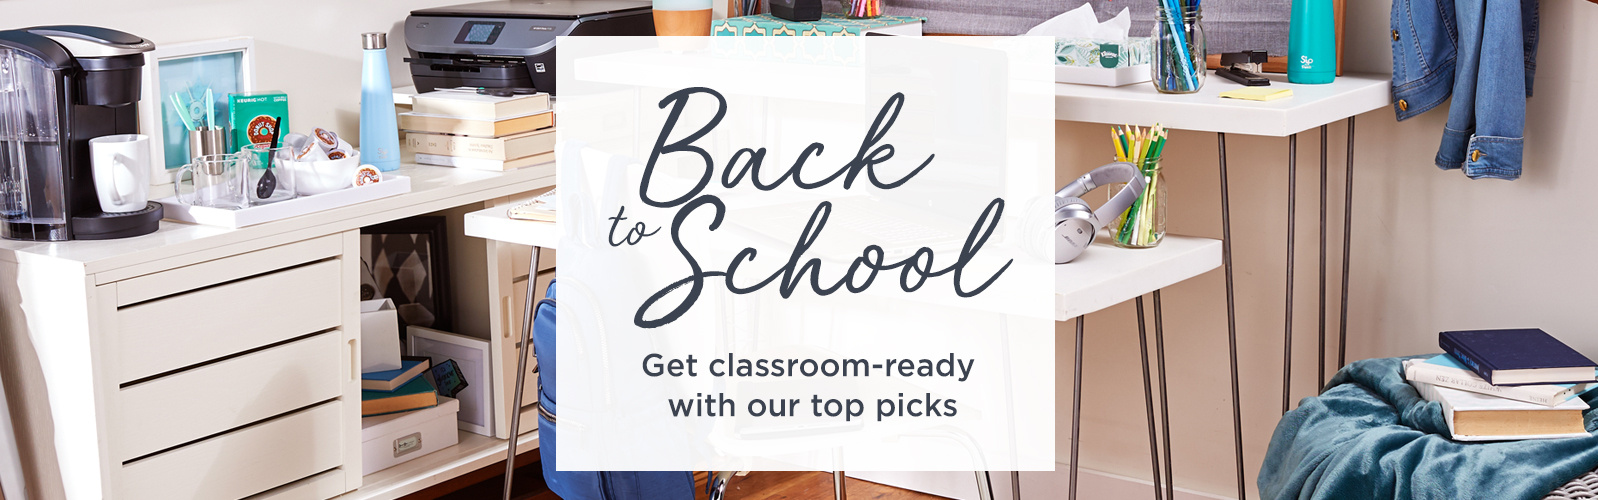 Back to School.  Get classroom-ready with our top picks